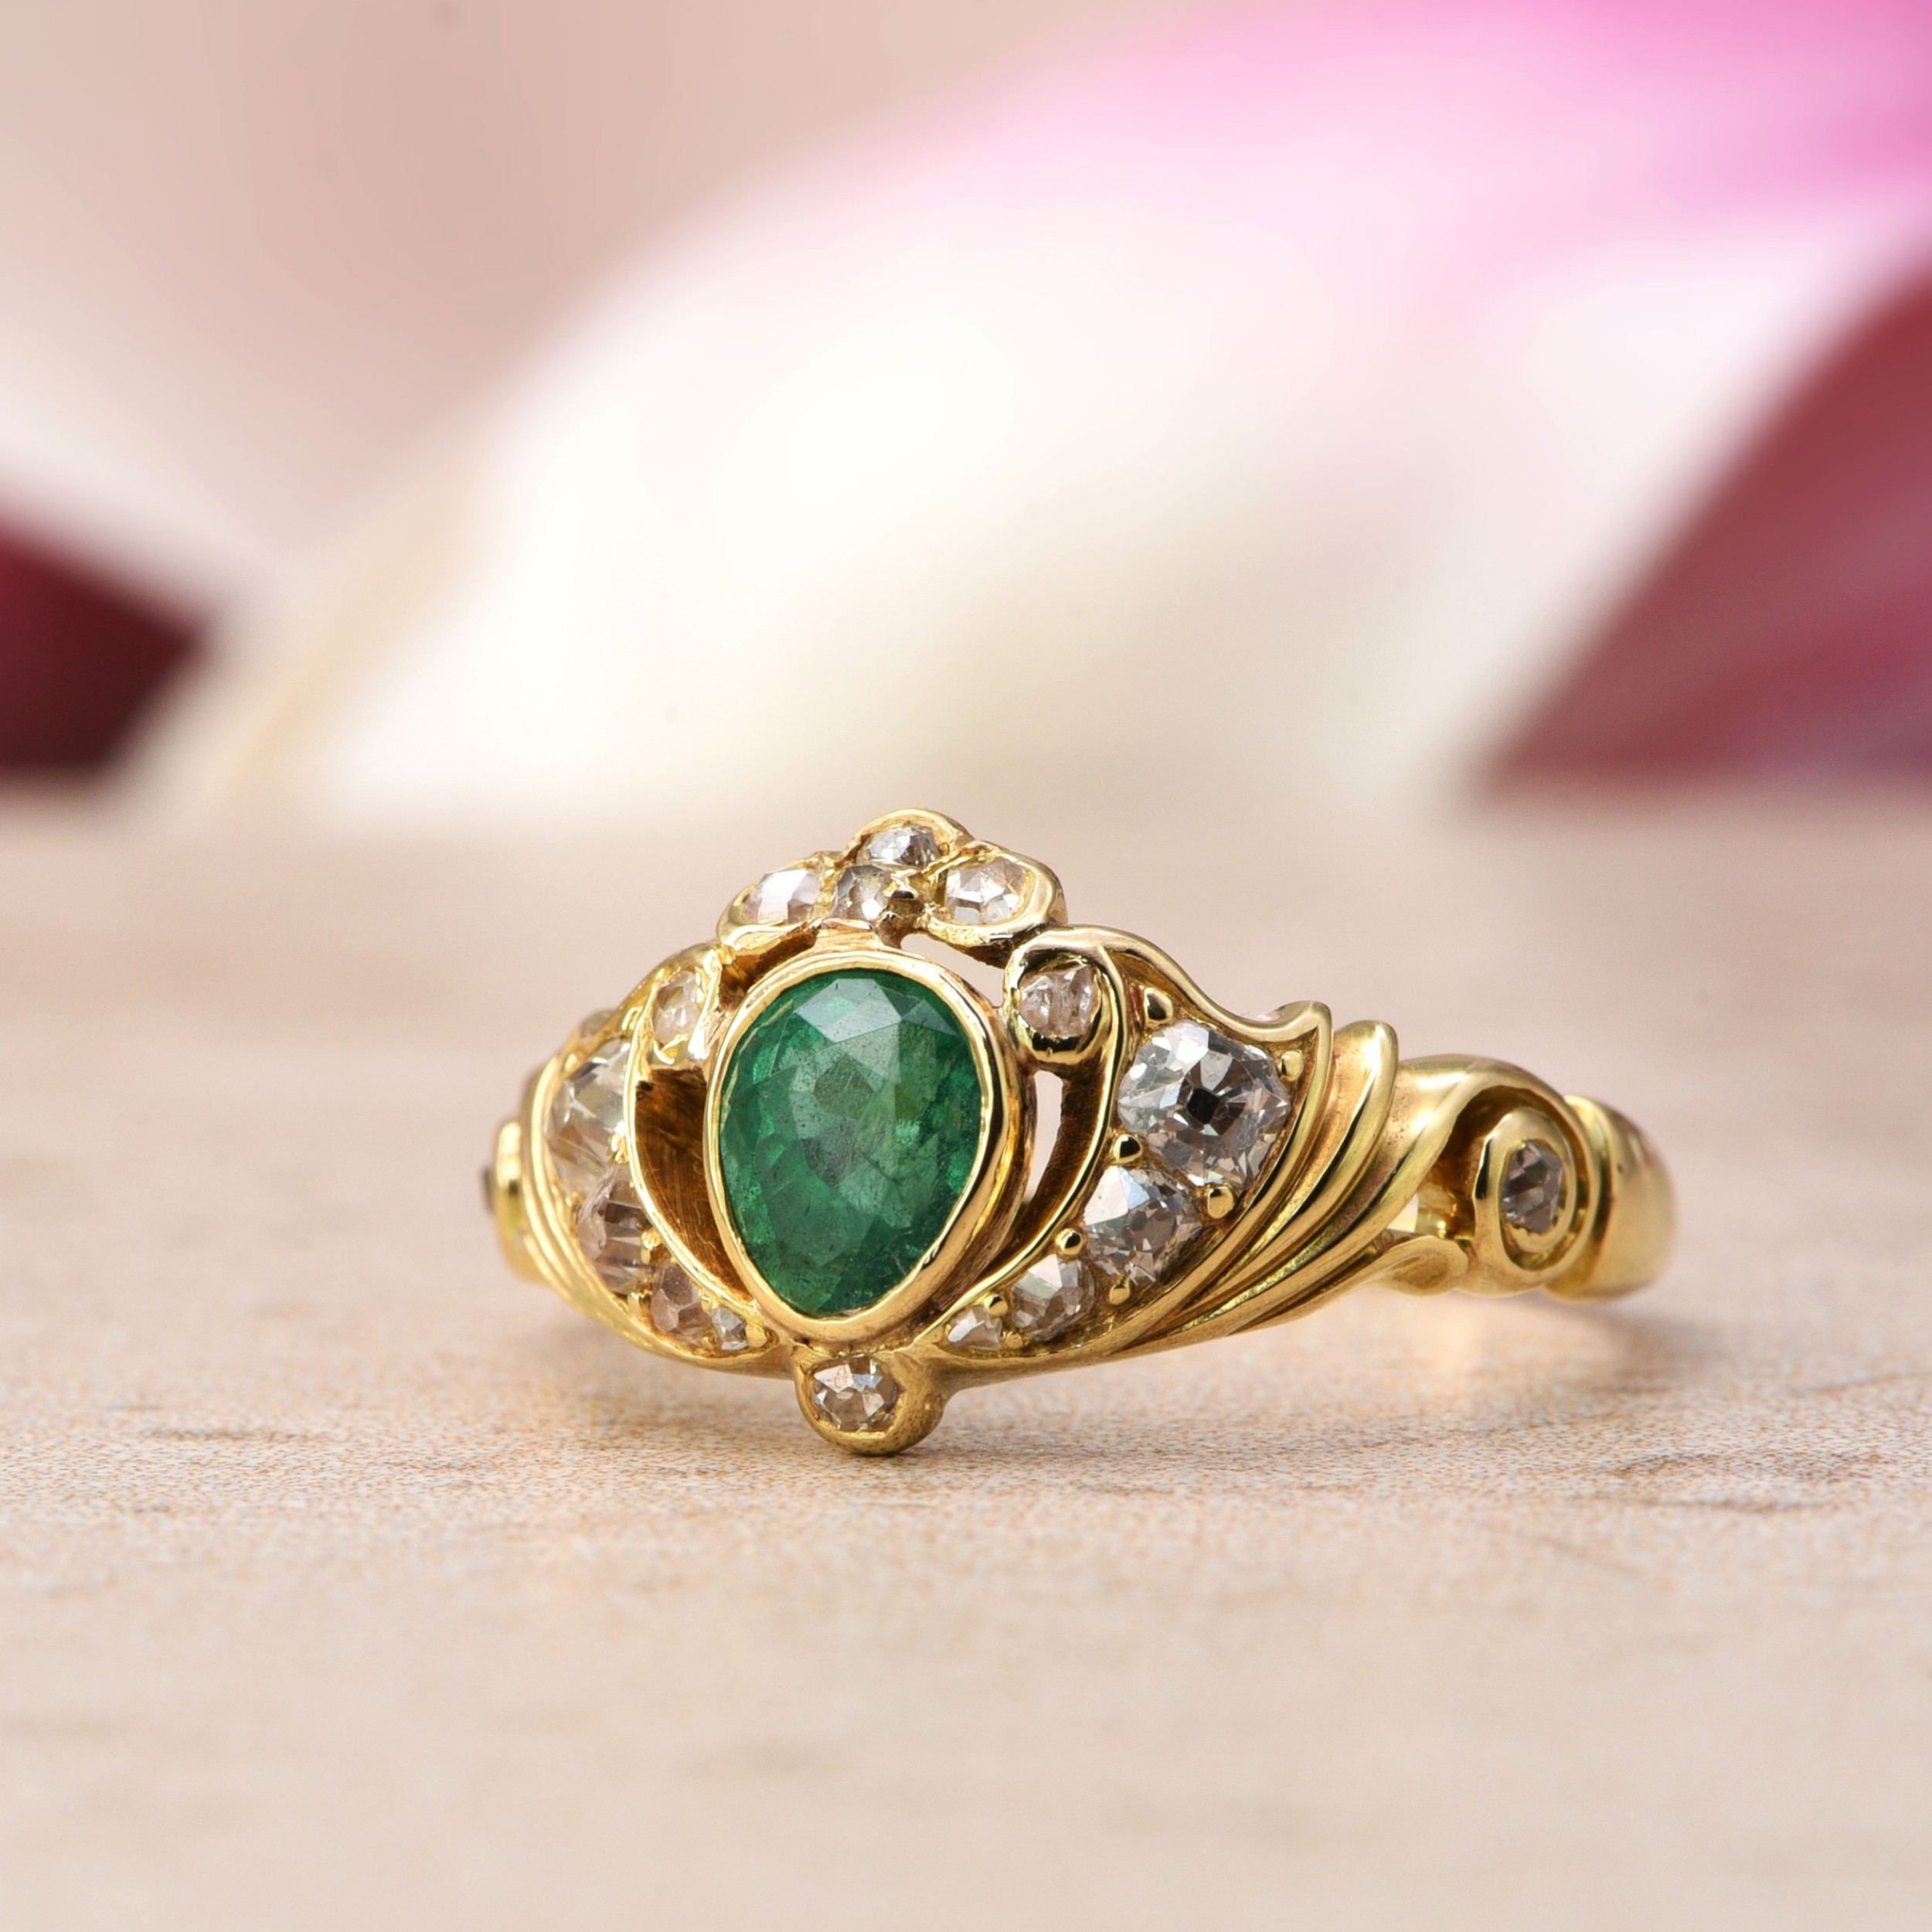 the antique 19th century emerald and seventeen diamond ring